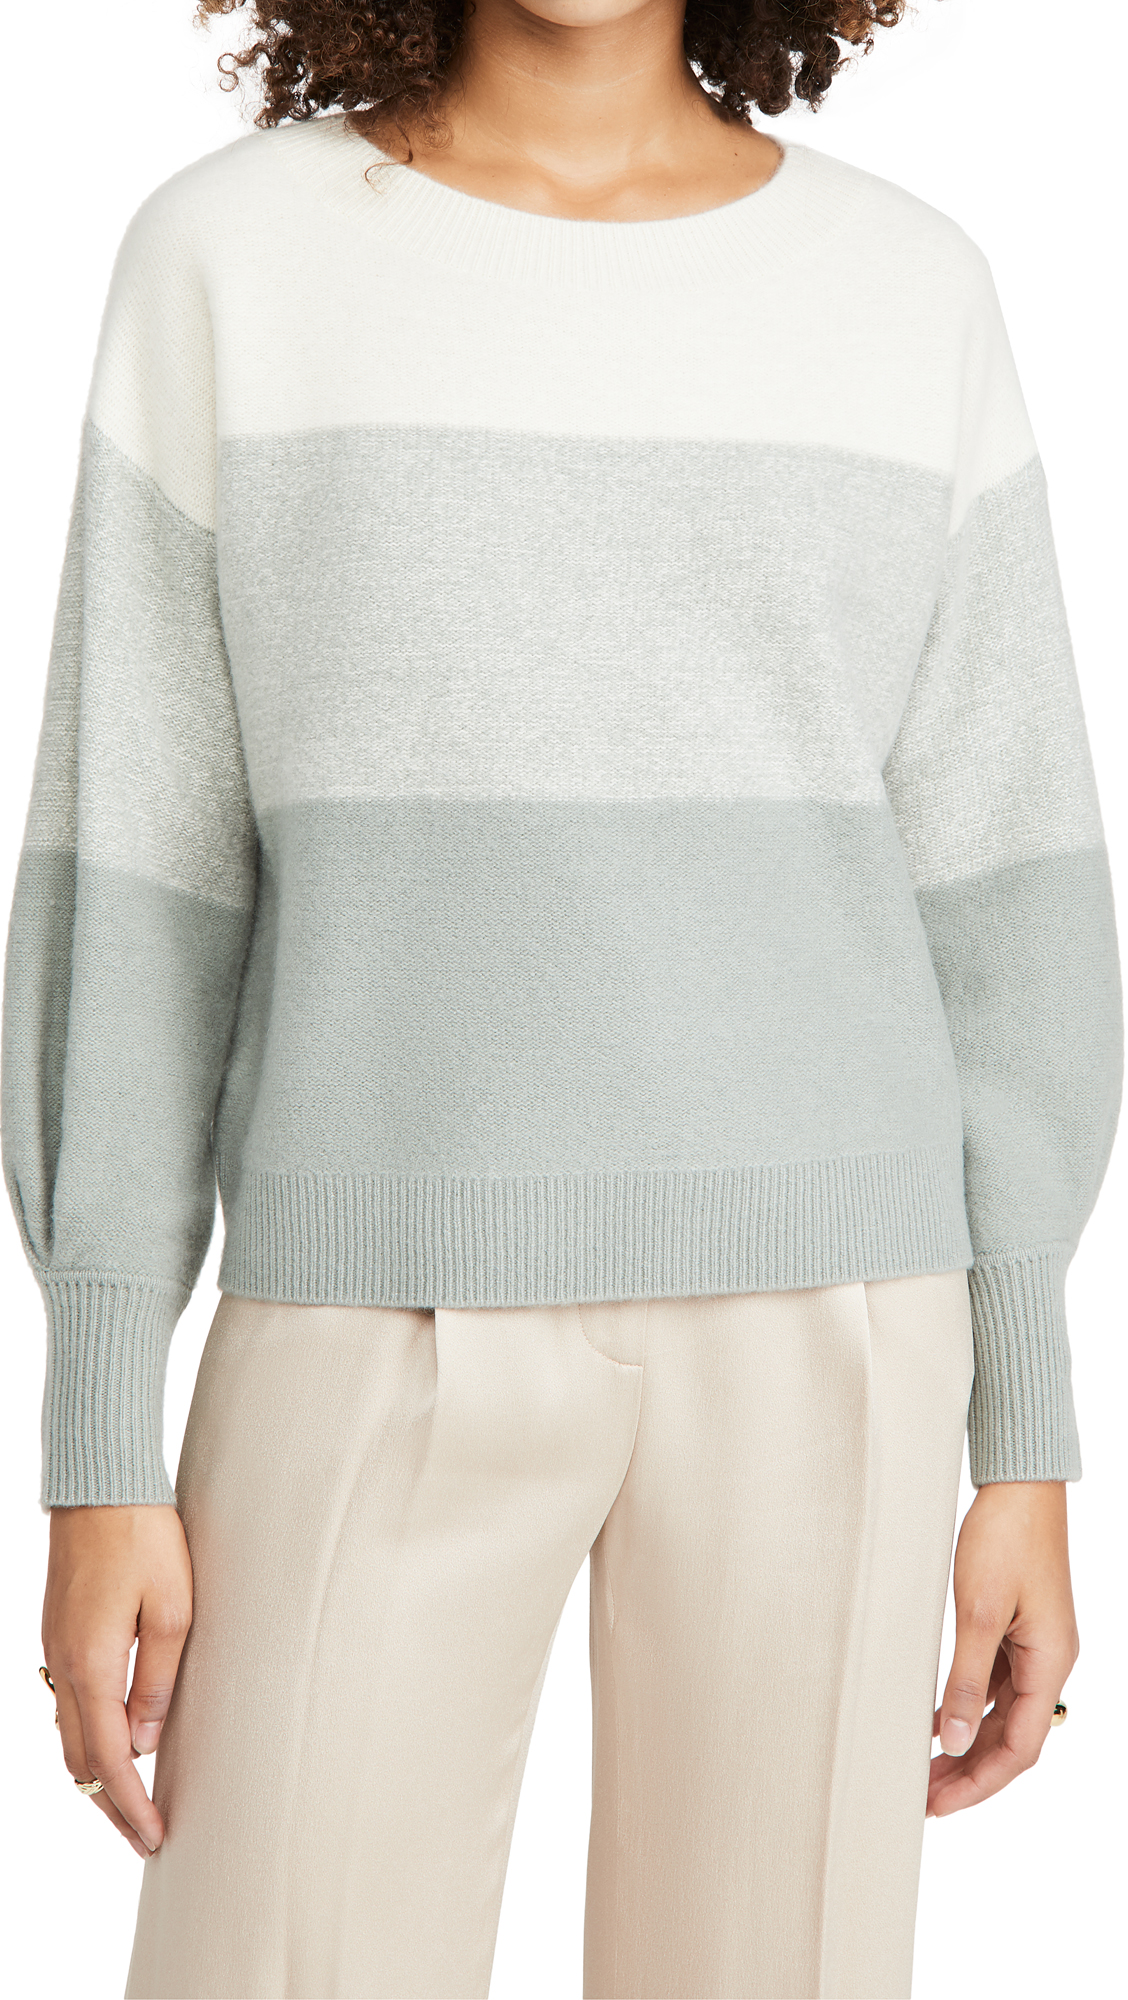 Club Monaco Boiled Boatneck Cashmere Sweater